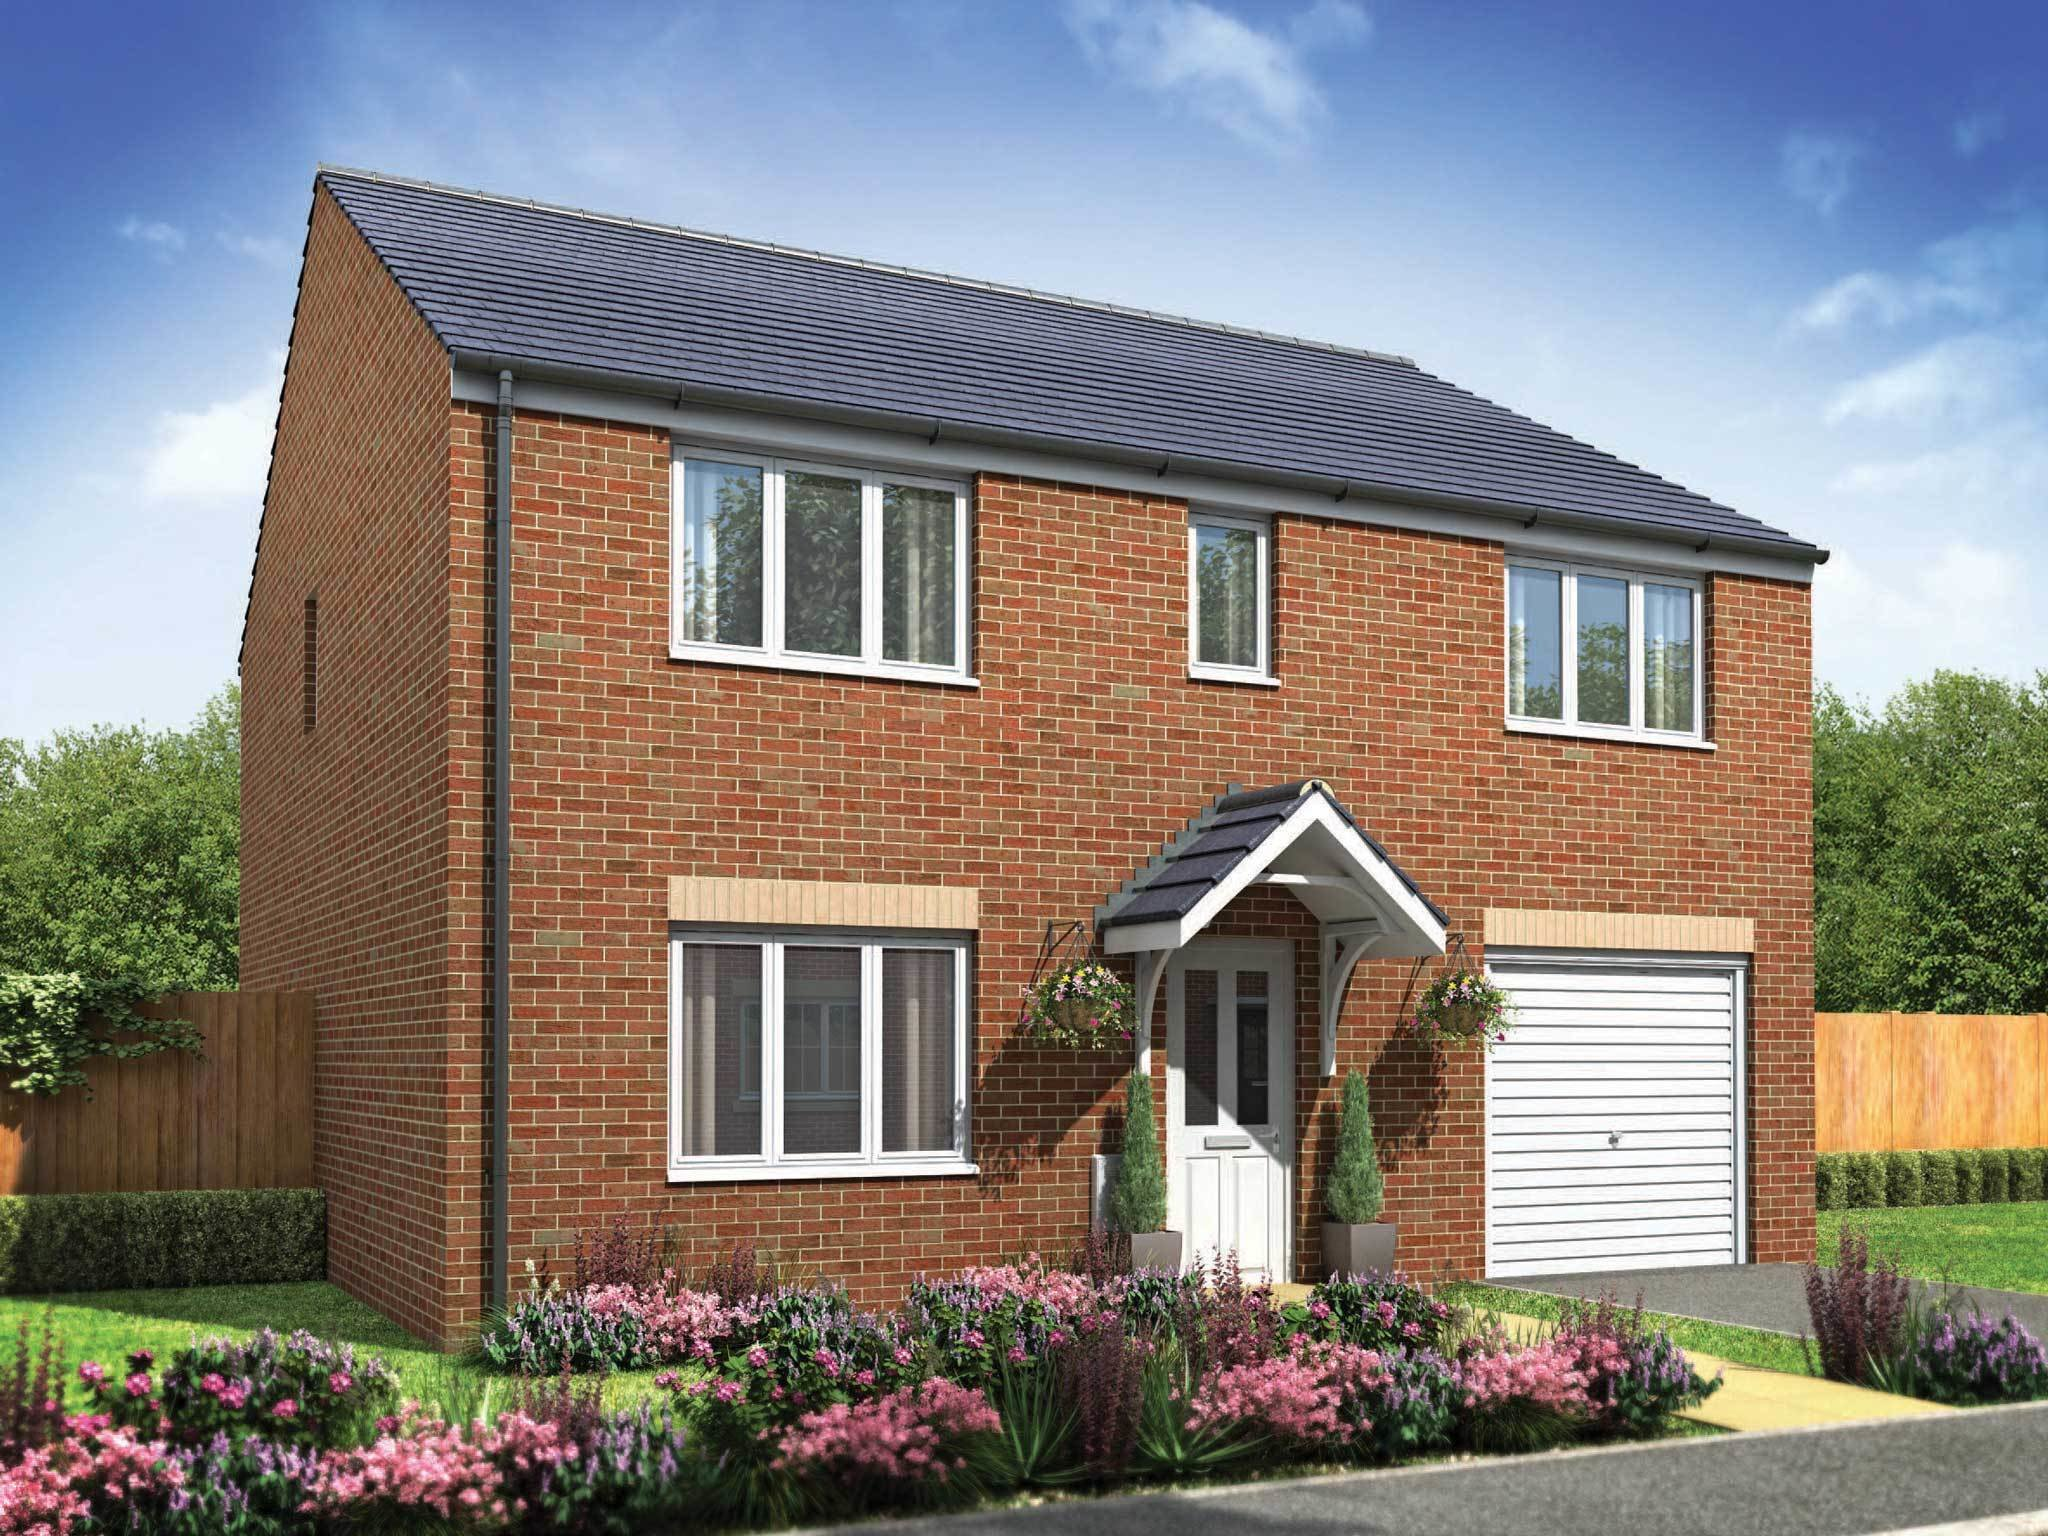 Best Houses For Sale In Birmingham West Midlands B29 6Ha With Pictures